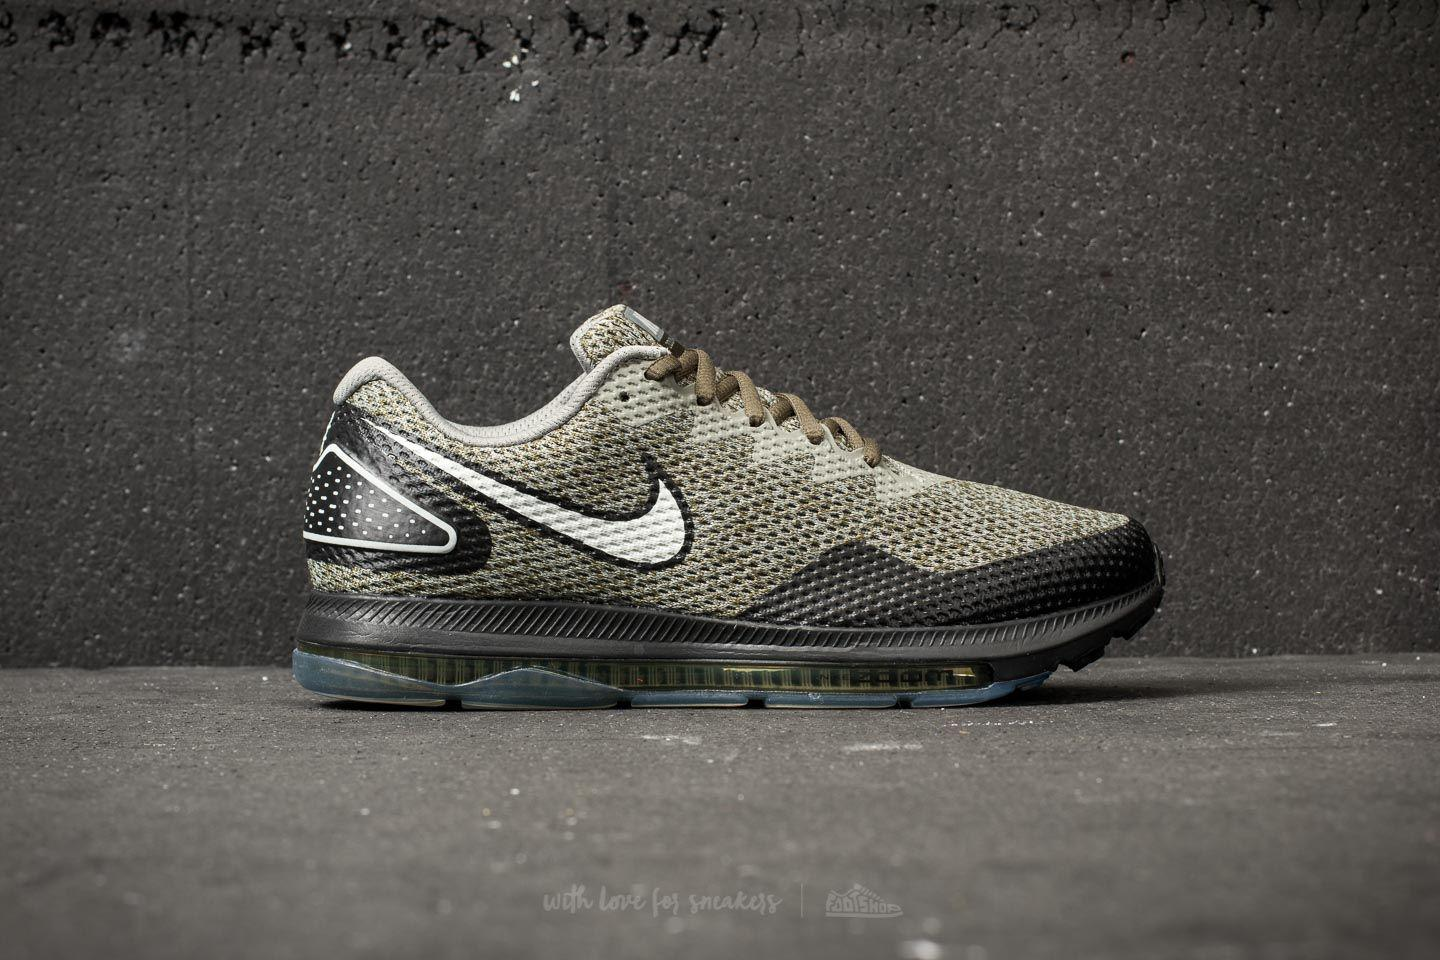 82bfdfd6d3 Lyst - Nike Zoom All Out Low 2 Cargo Khaki  Light Bone-black in ...